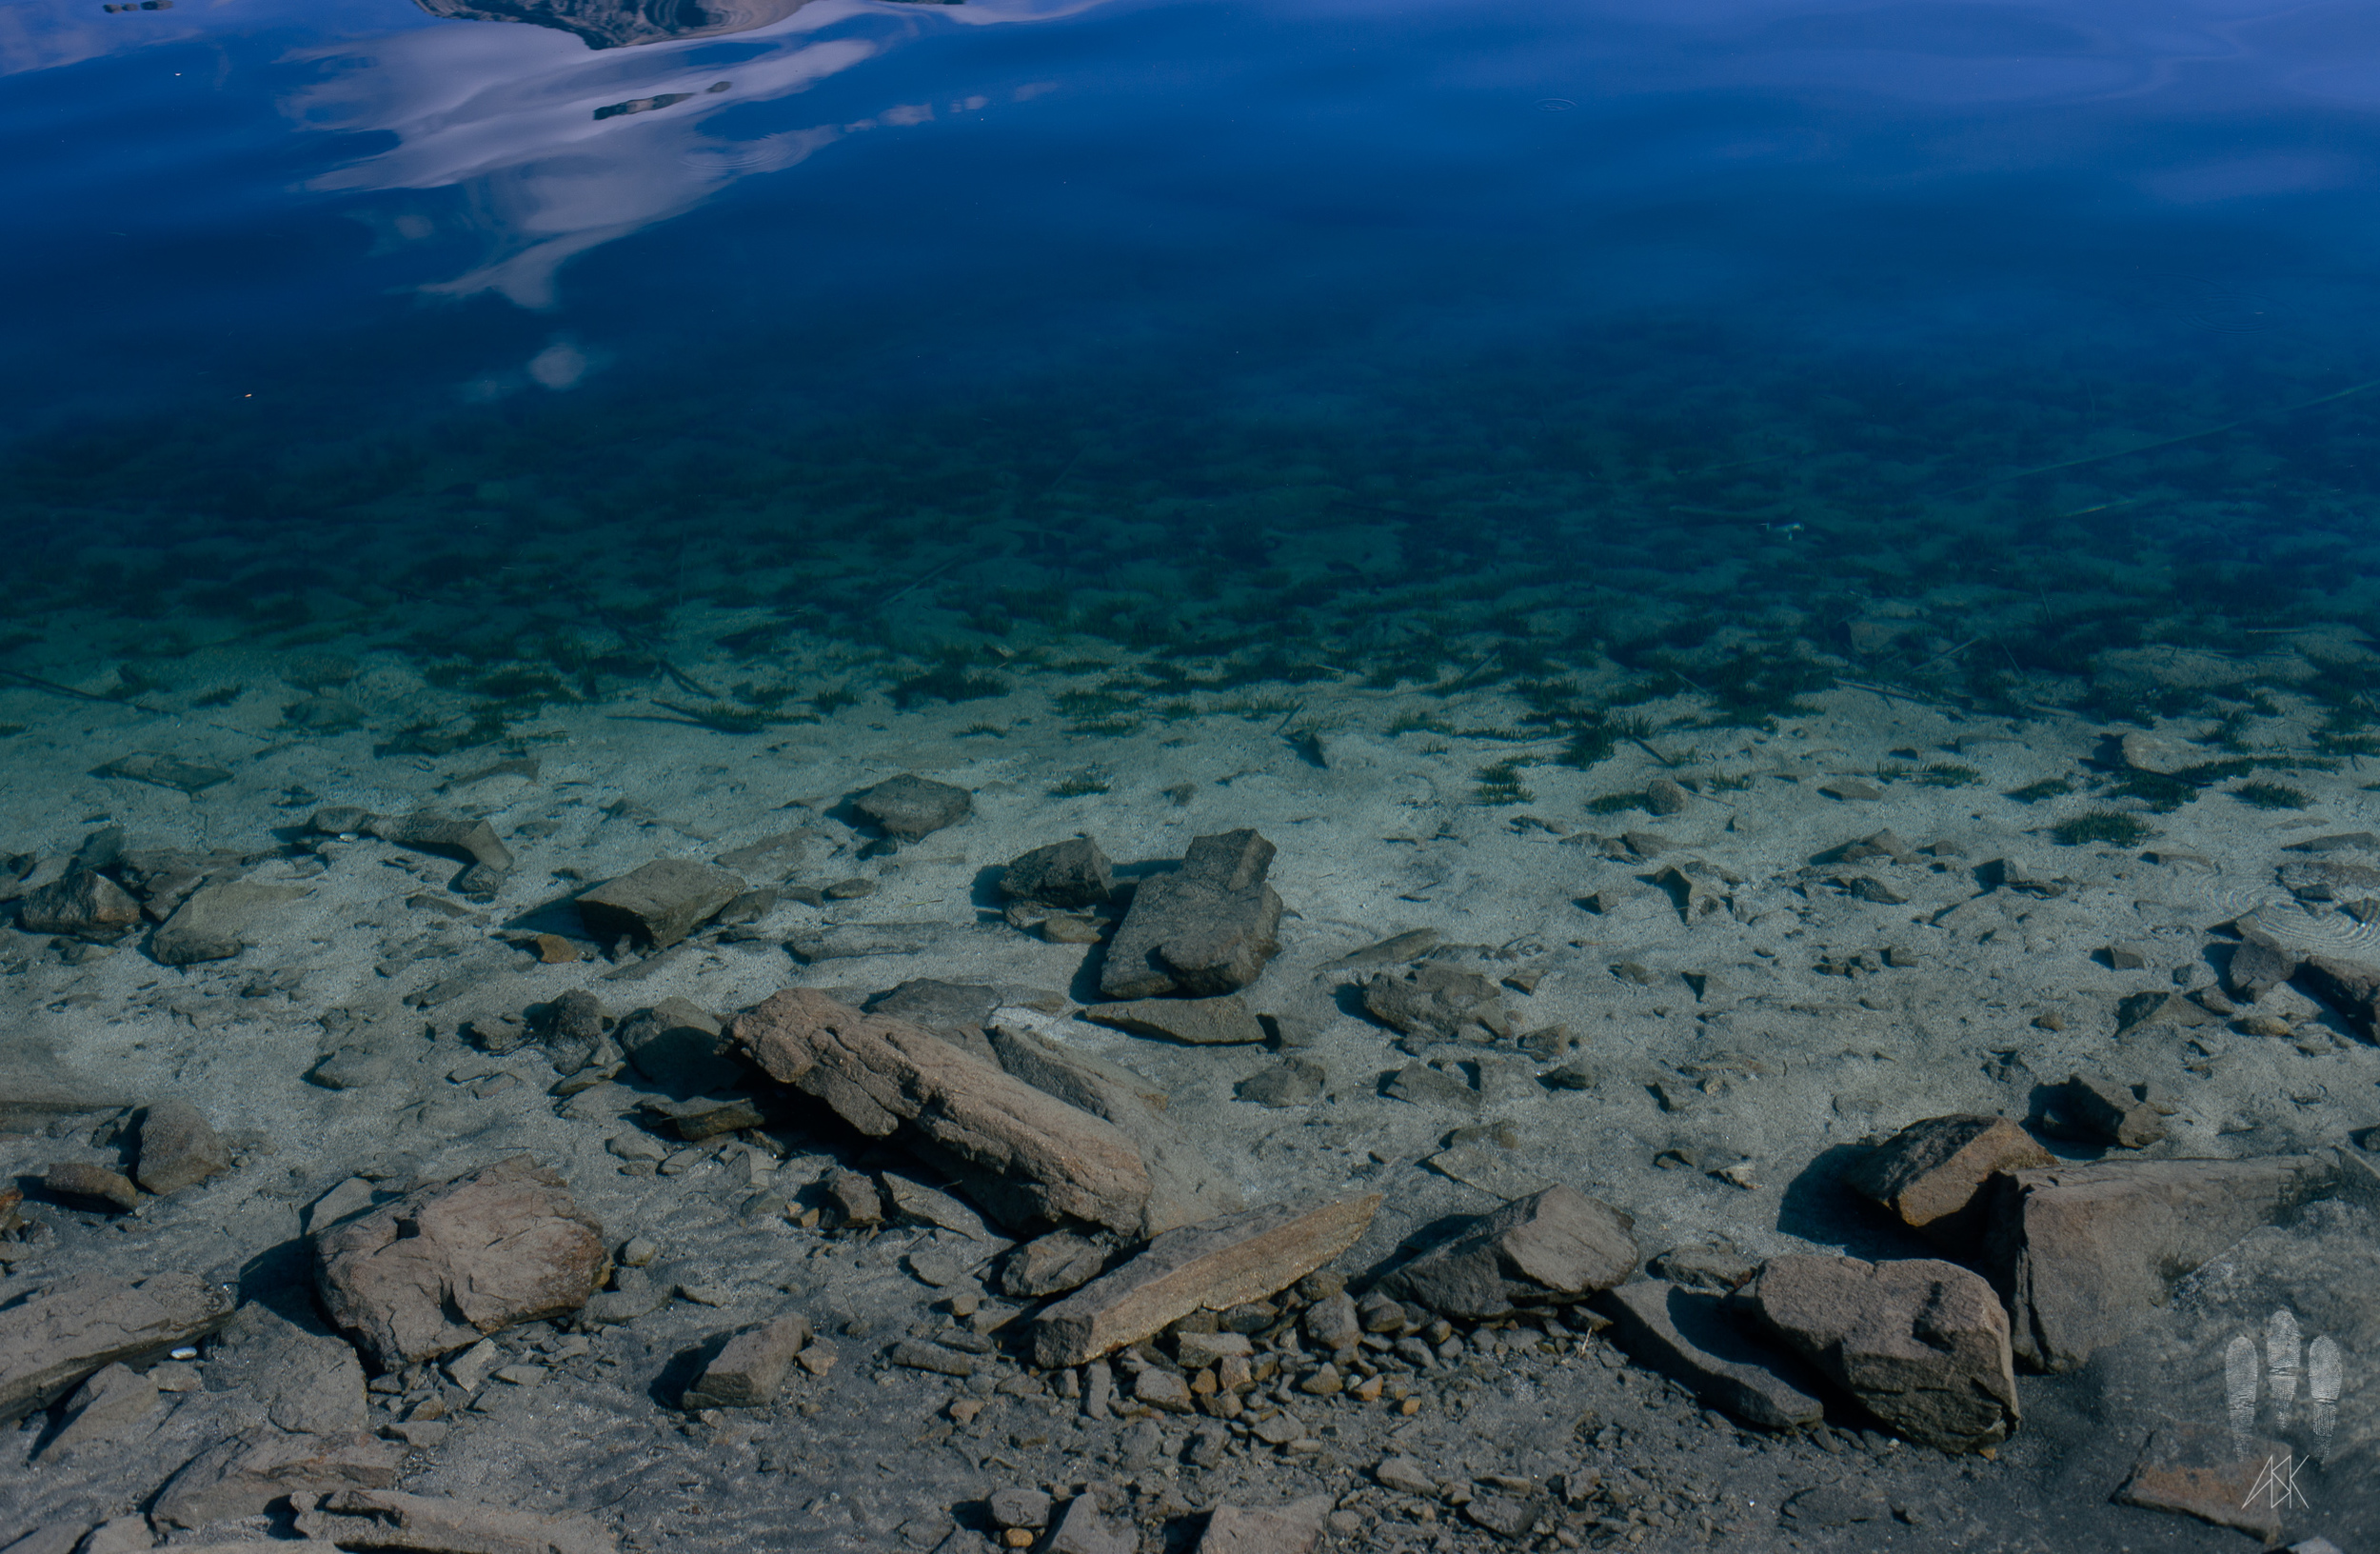 Crystal clear waters of Lago Nahuel Huapi